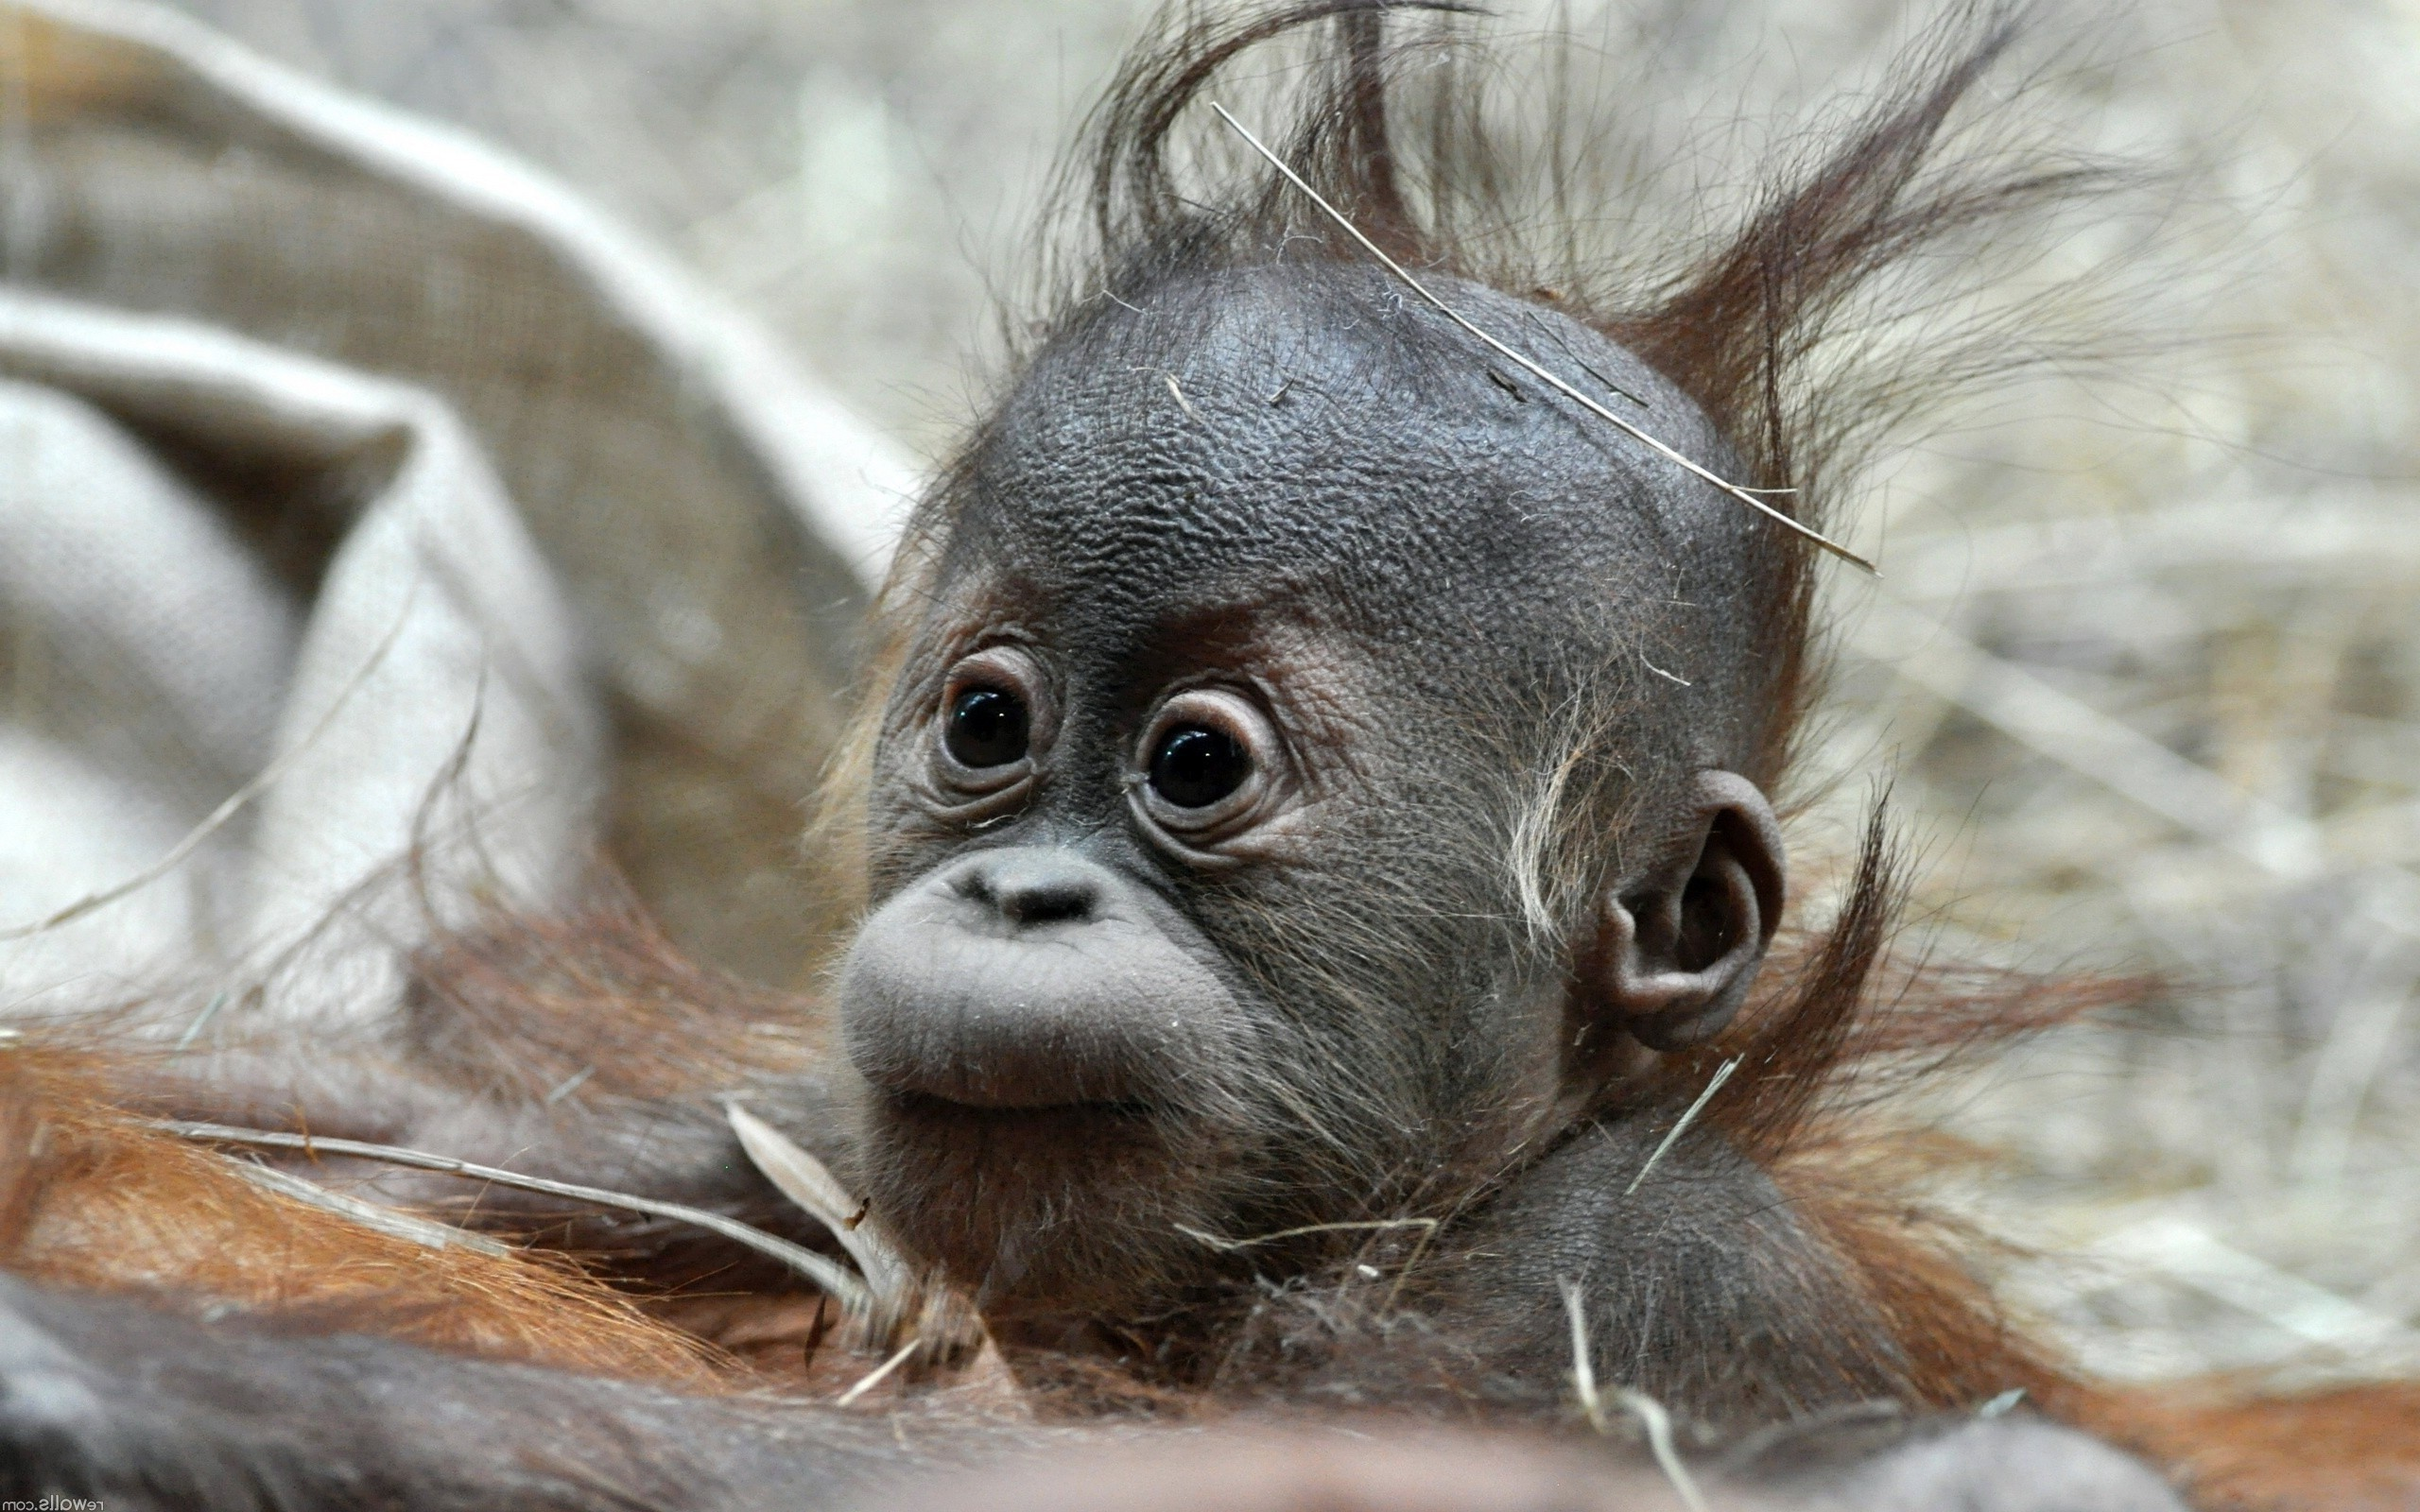 Monkey Baby Picture wallpapers (9 Wallpapers)